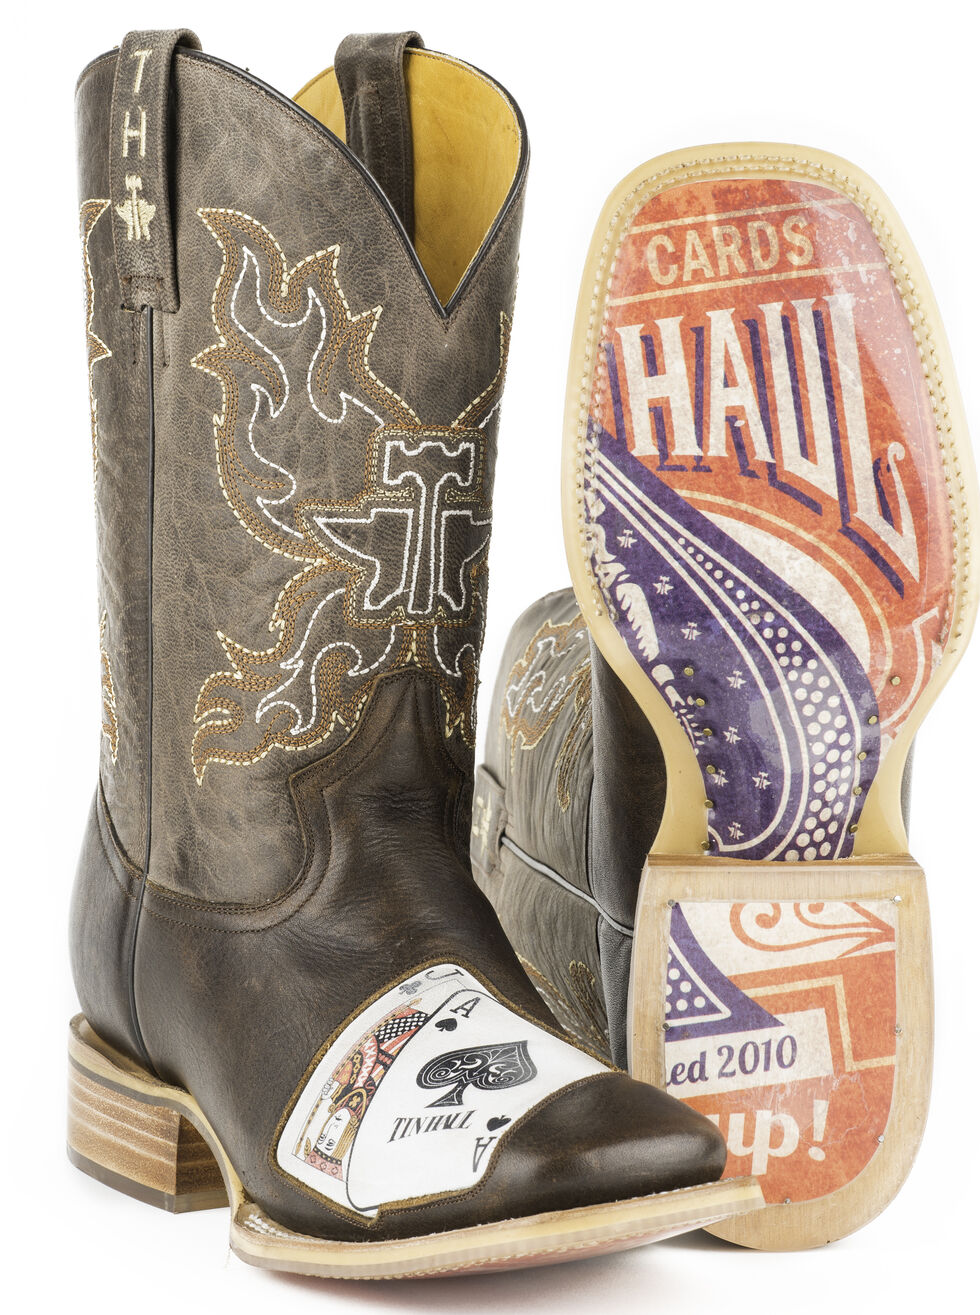 Tin Haul Men's Black Jack Cowboy Boots - Square Toe, Brown, hi-res